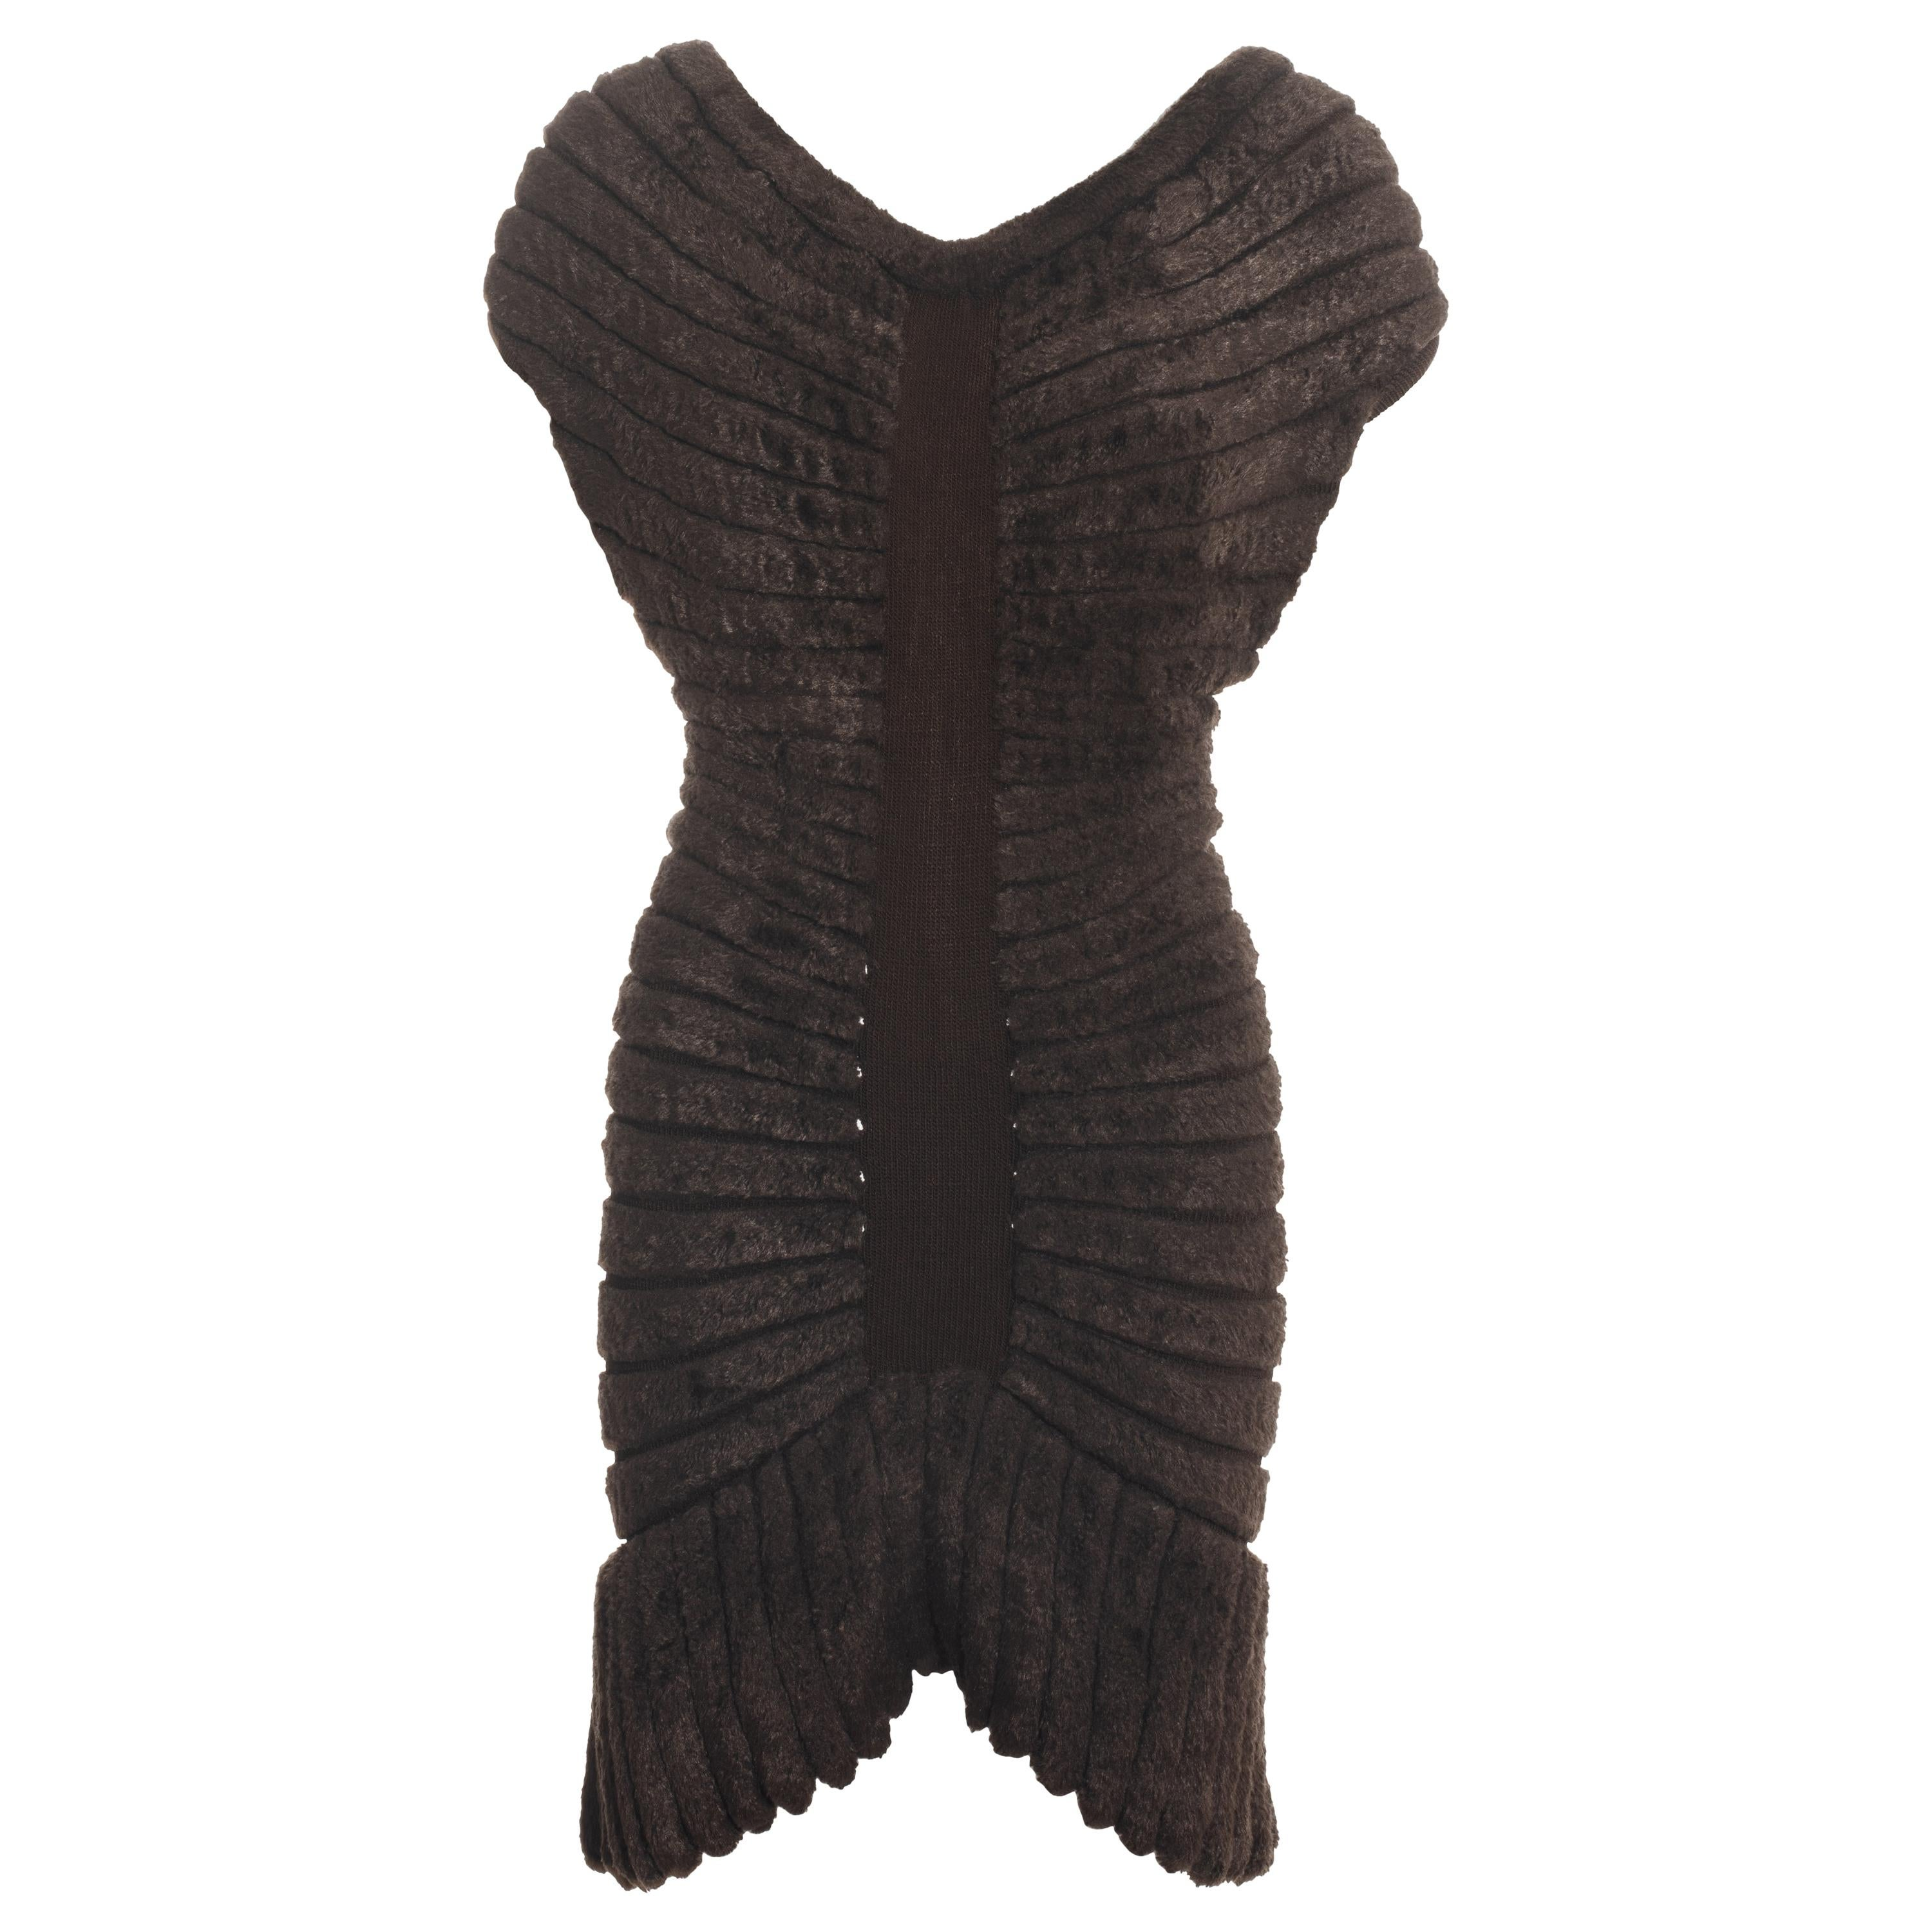 Azzedine Alaia brown chenille knitted 'houpette' mini dress, ss 1994